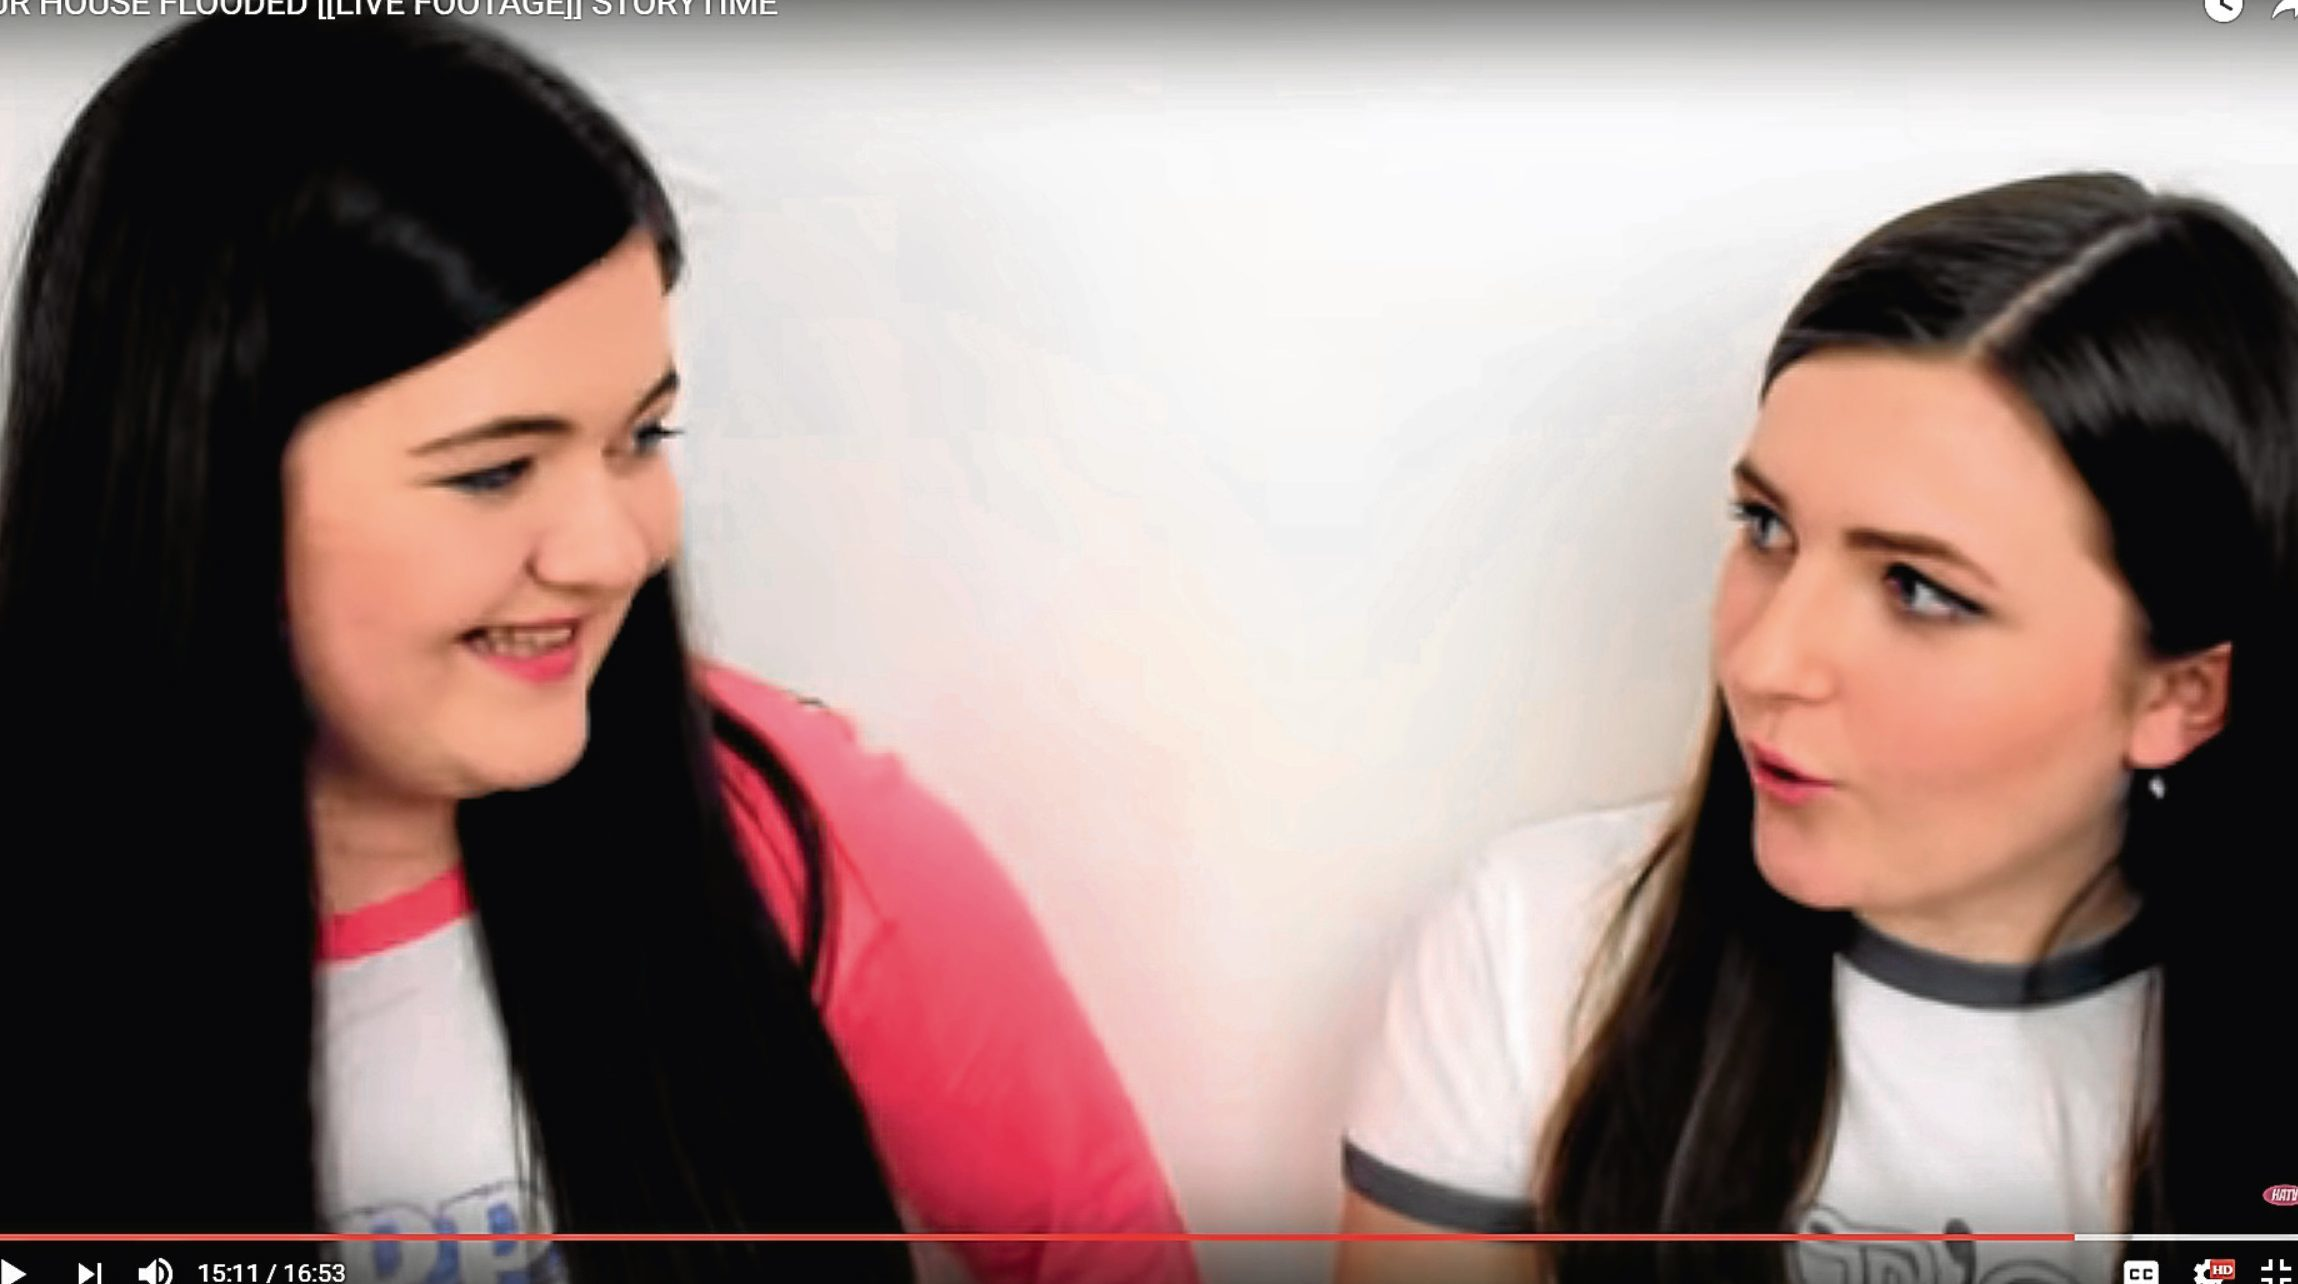 A still from one of the girls' videos.